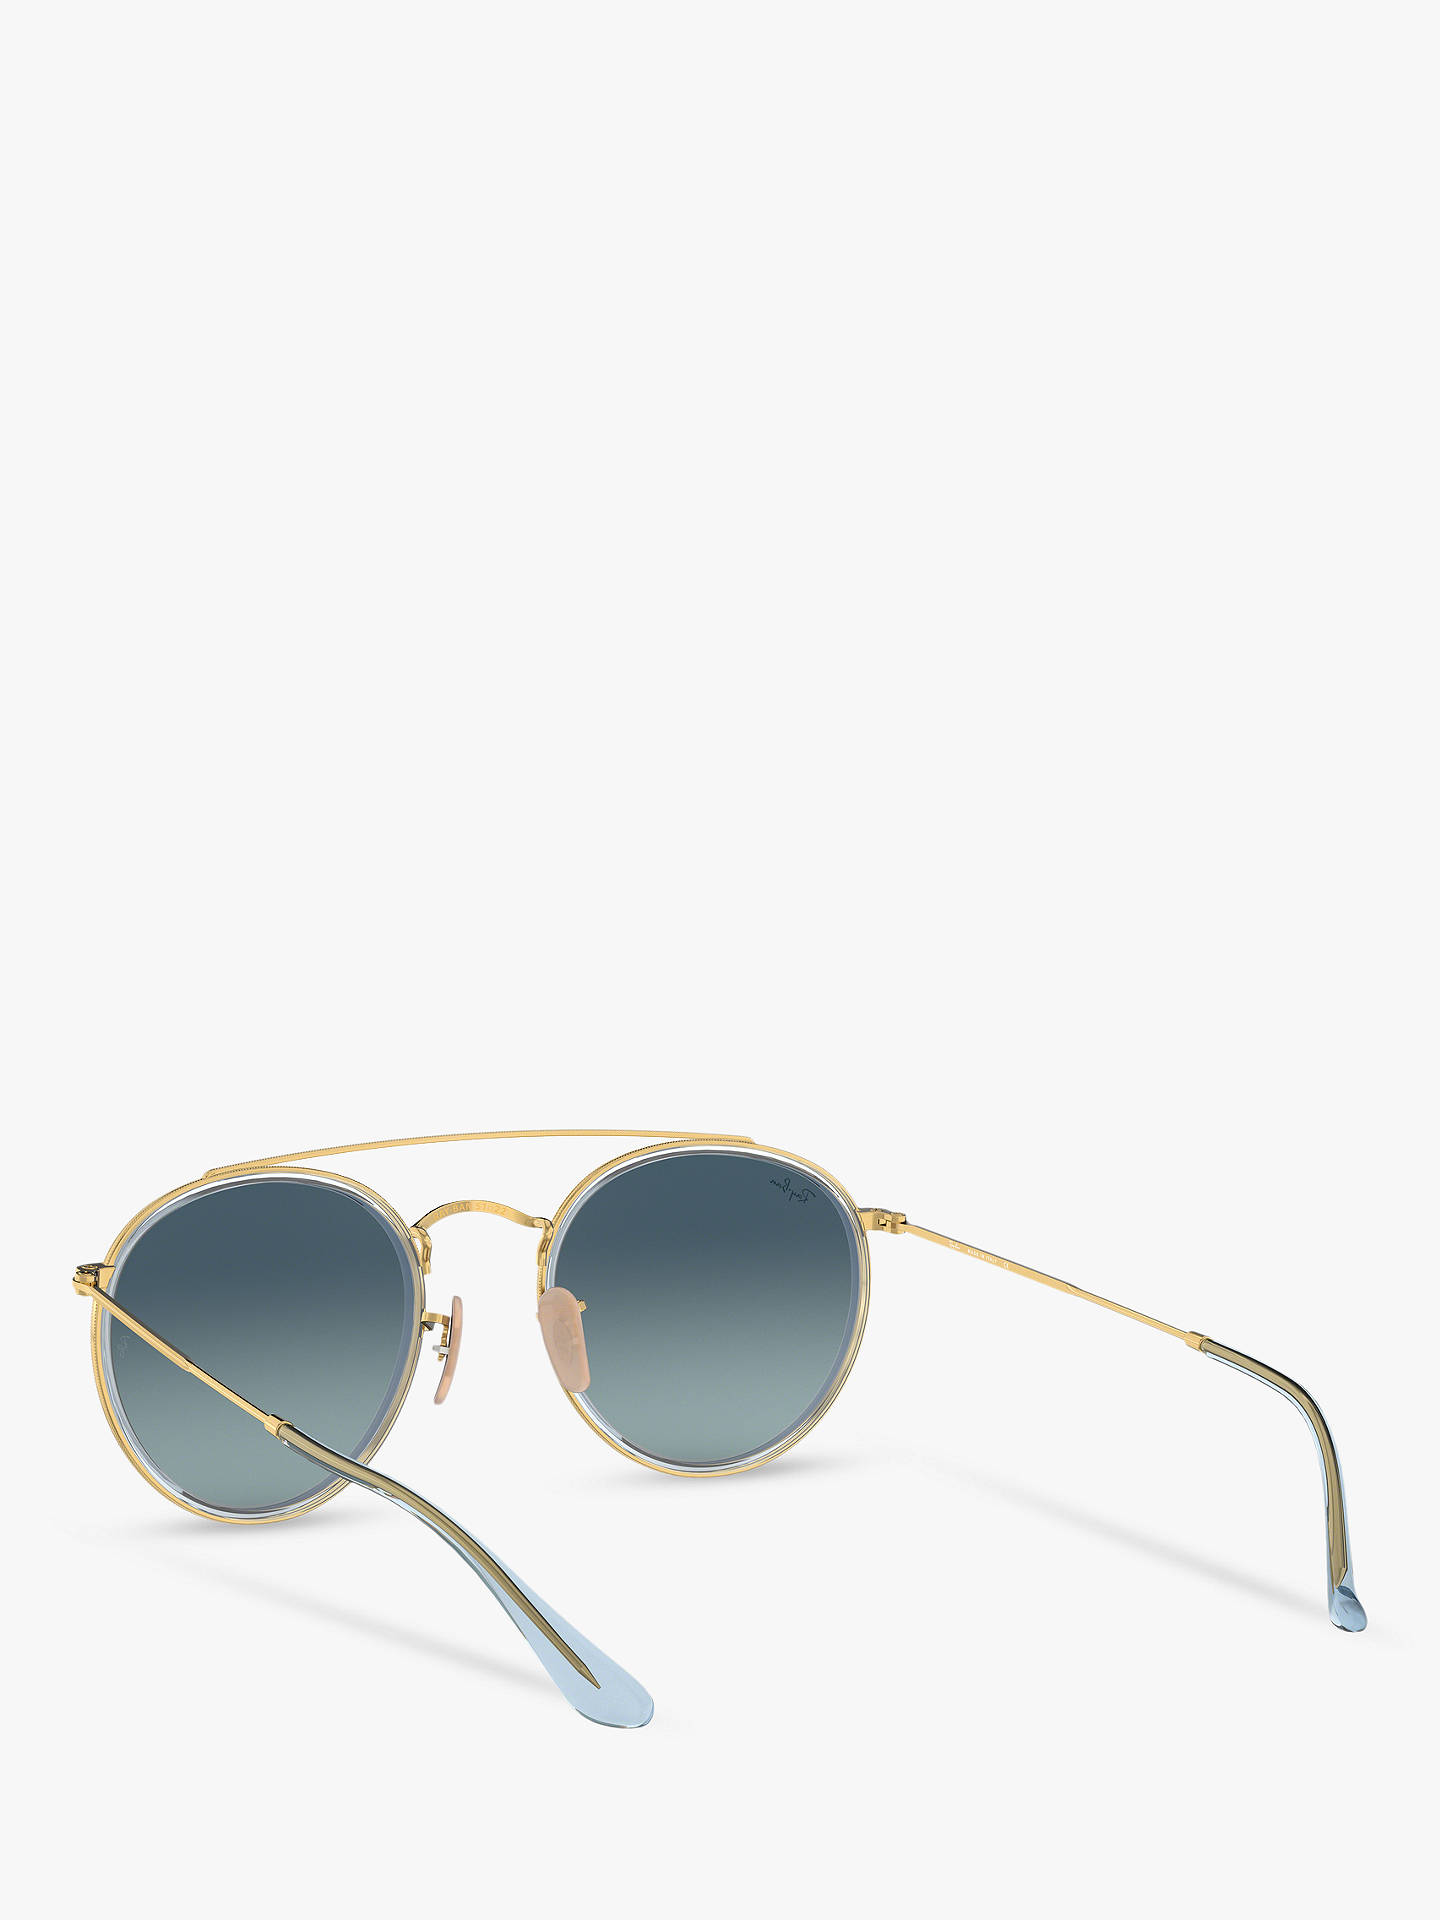 BuyRay-Ban RB3647N Unisex Double Bridge Oval Sunglasses, Gold/Grey Blue Gradient Online at johnlewis.com